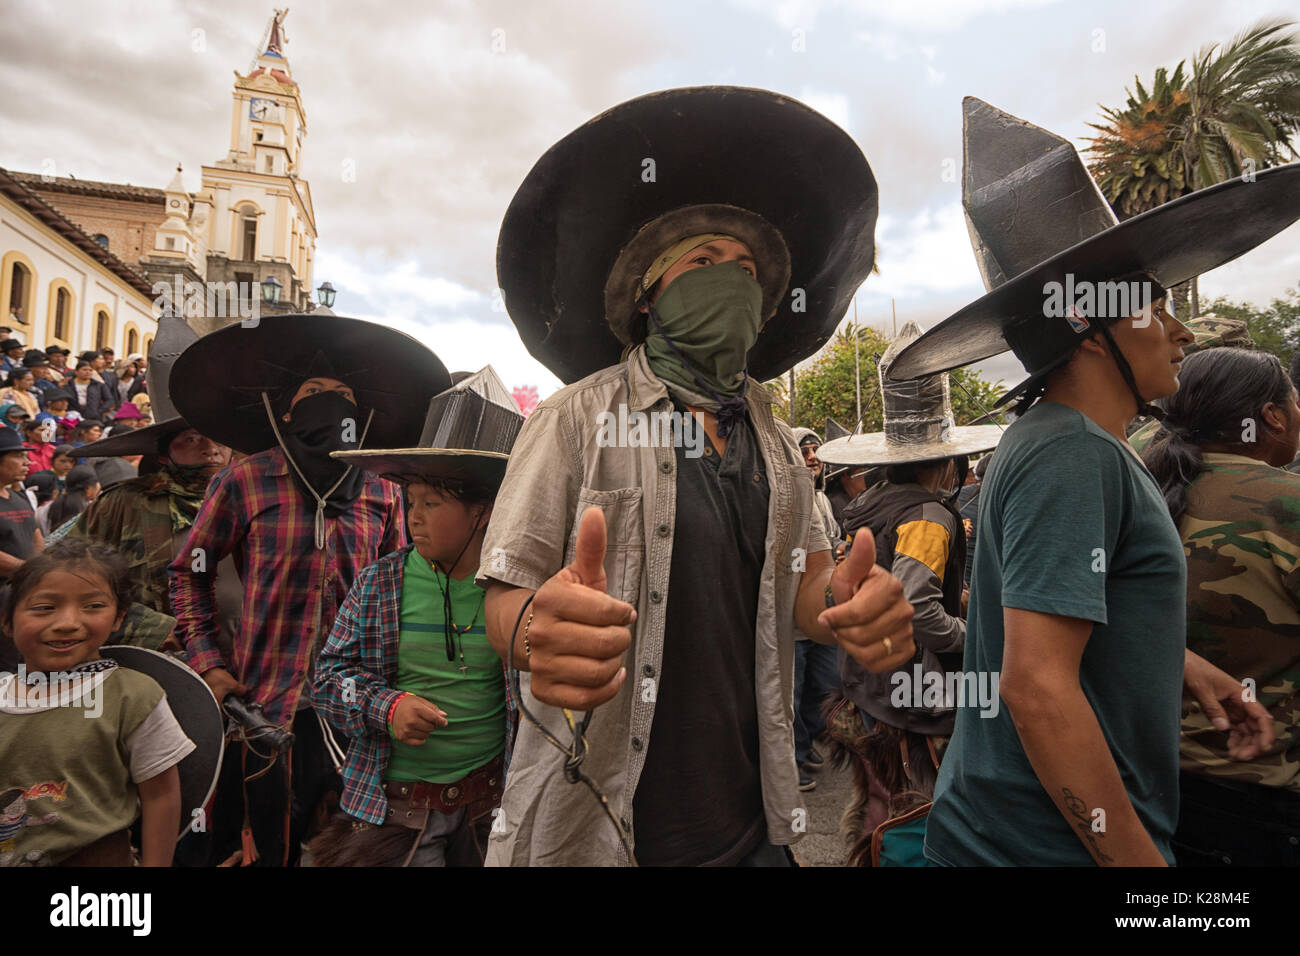 June 25, 2017 Cotacachi, Ecuador: a male dancer shows two thumbs up during Inti Raymi parade - Stock Image